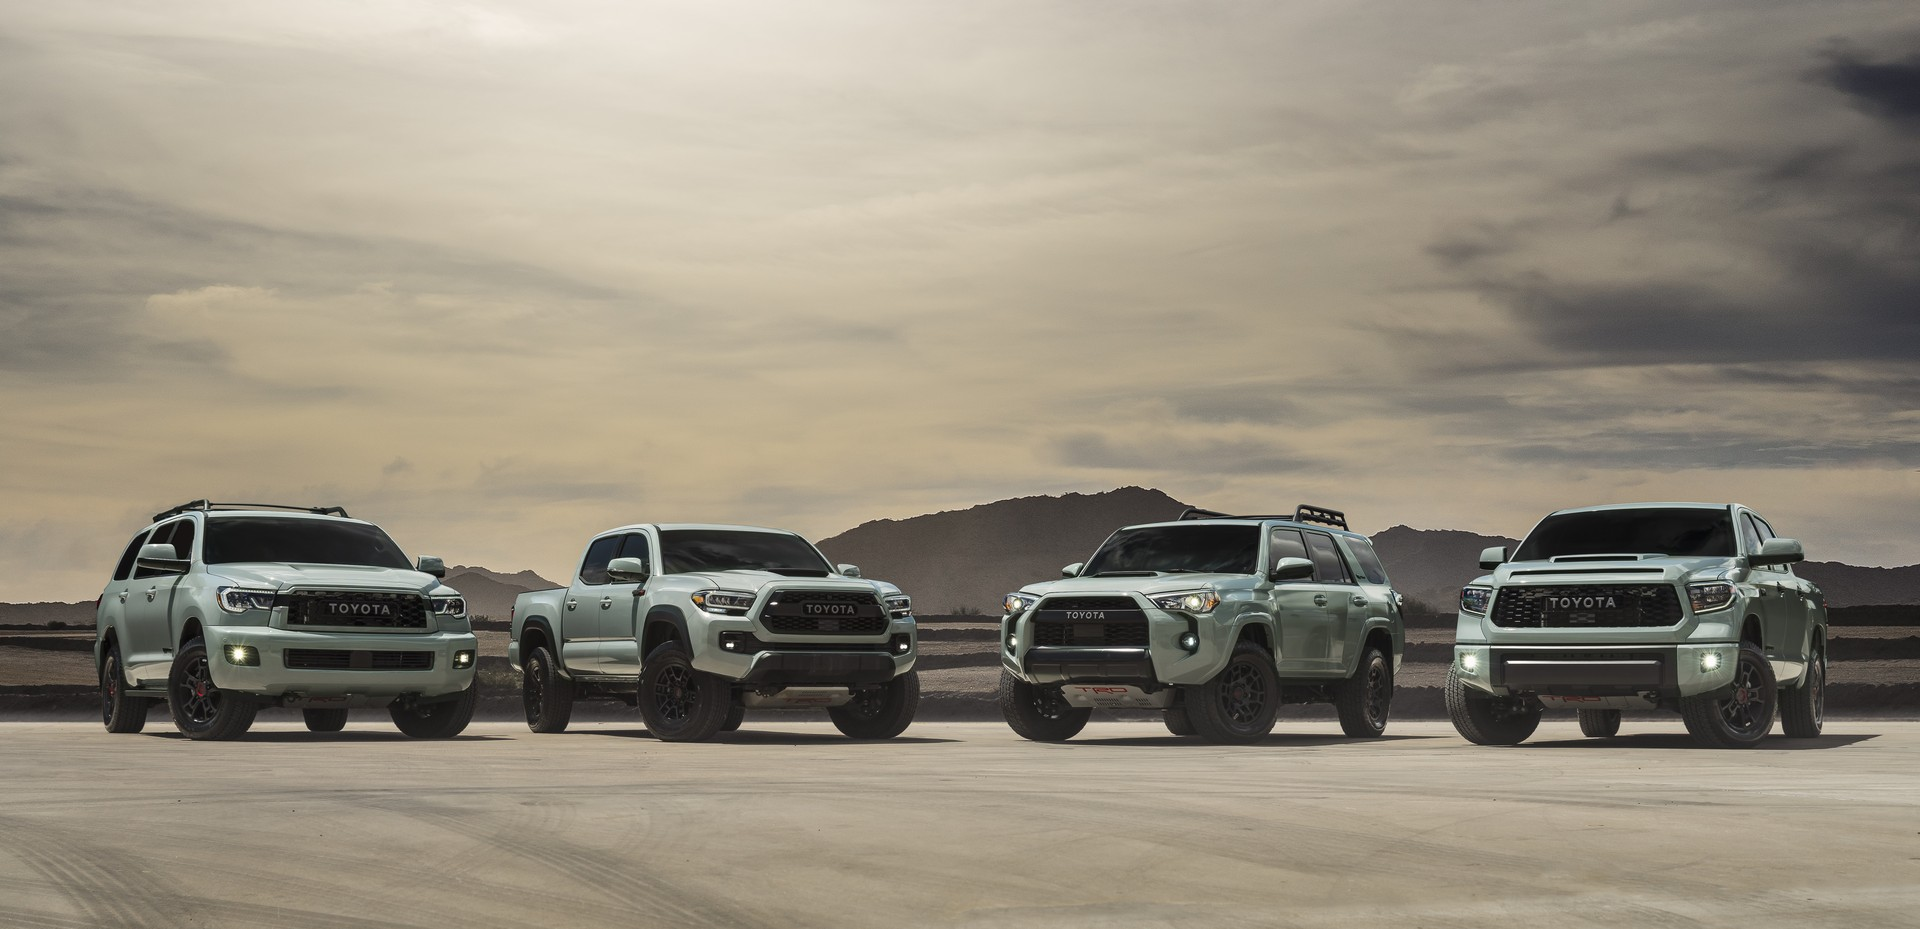 2021 Toyota Trd Pro Family Is Out Of This World 4runner Takes The Spot Autoevolution